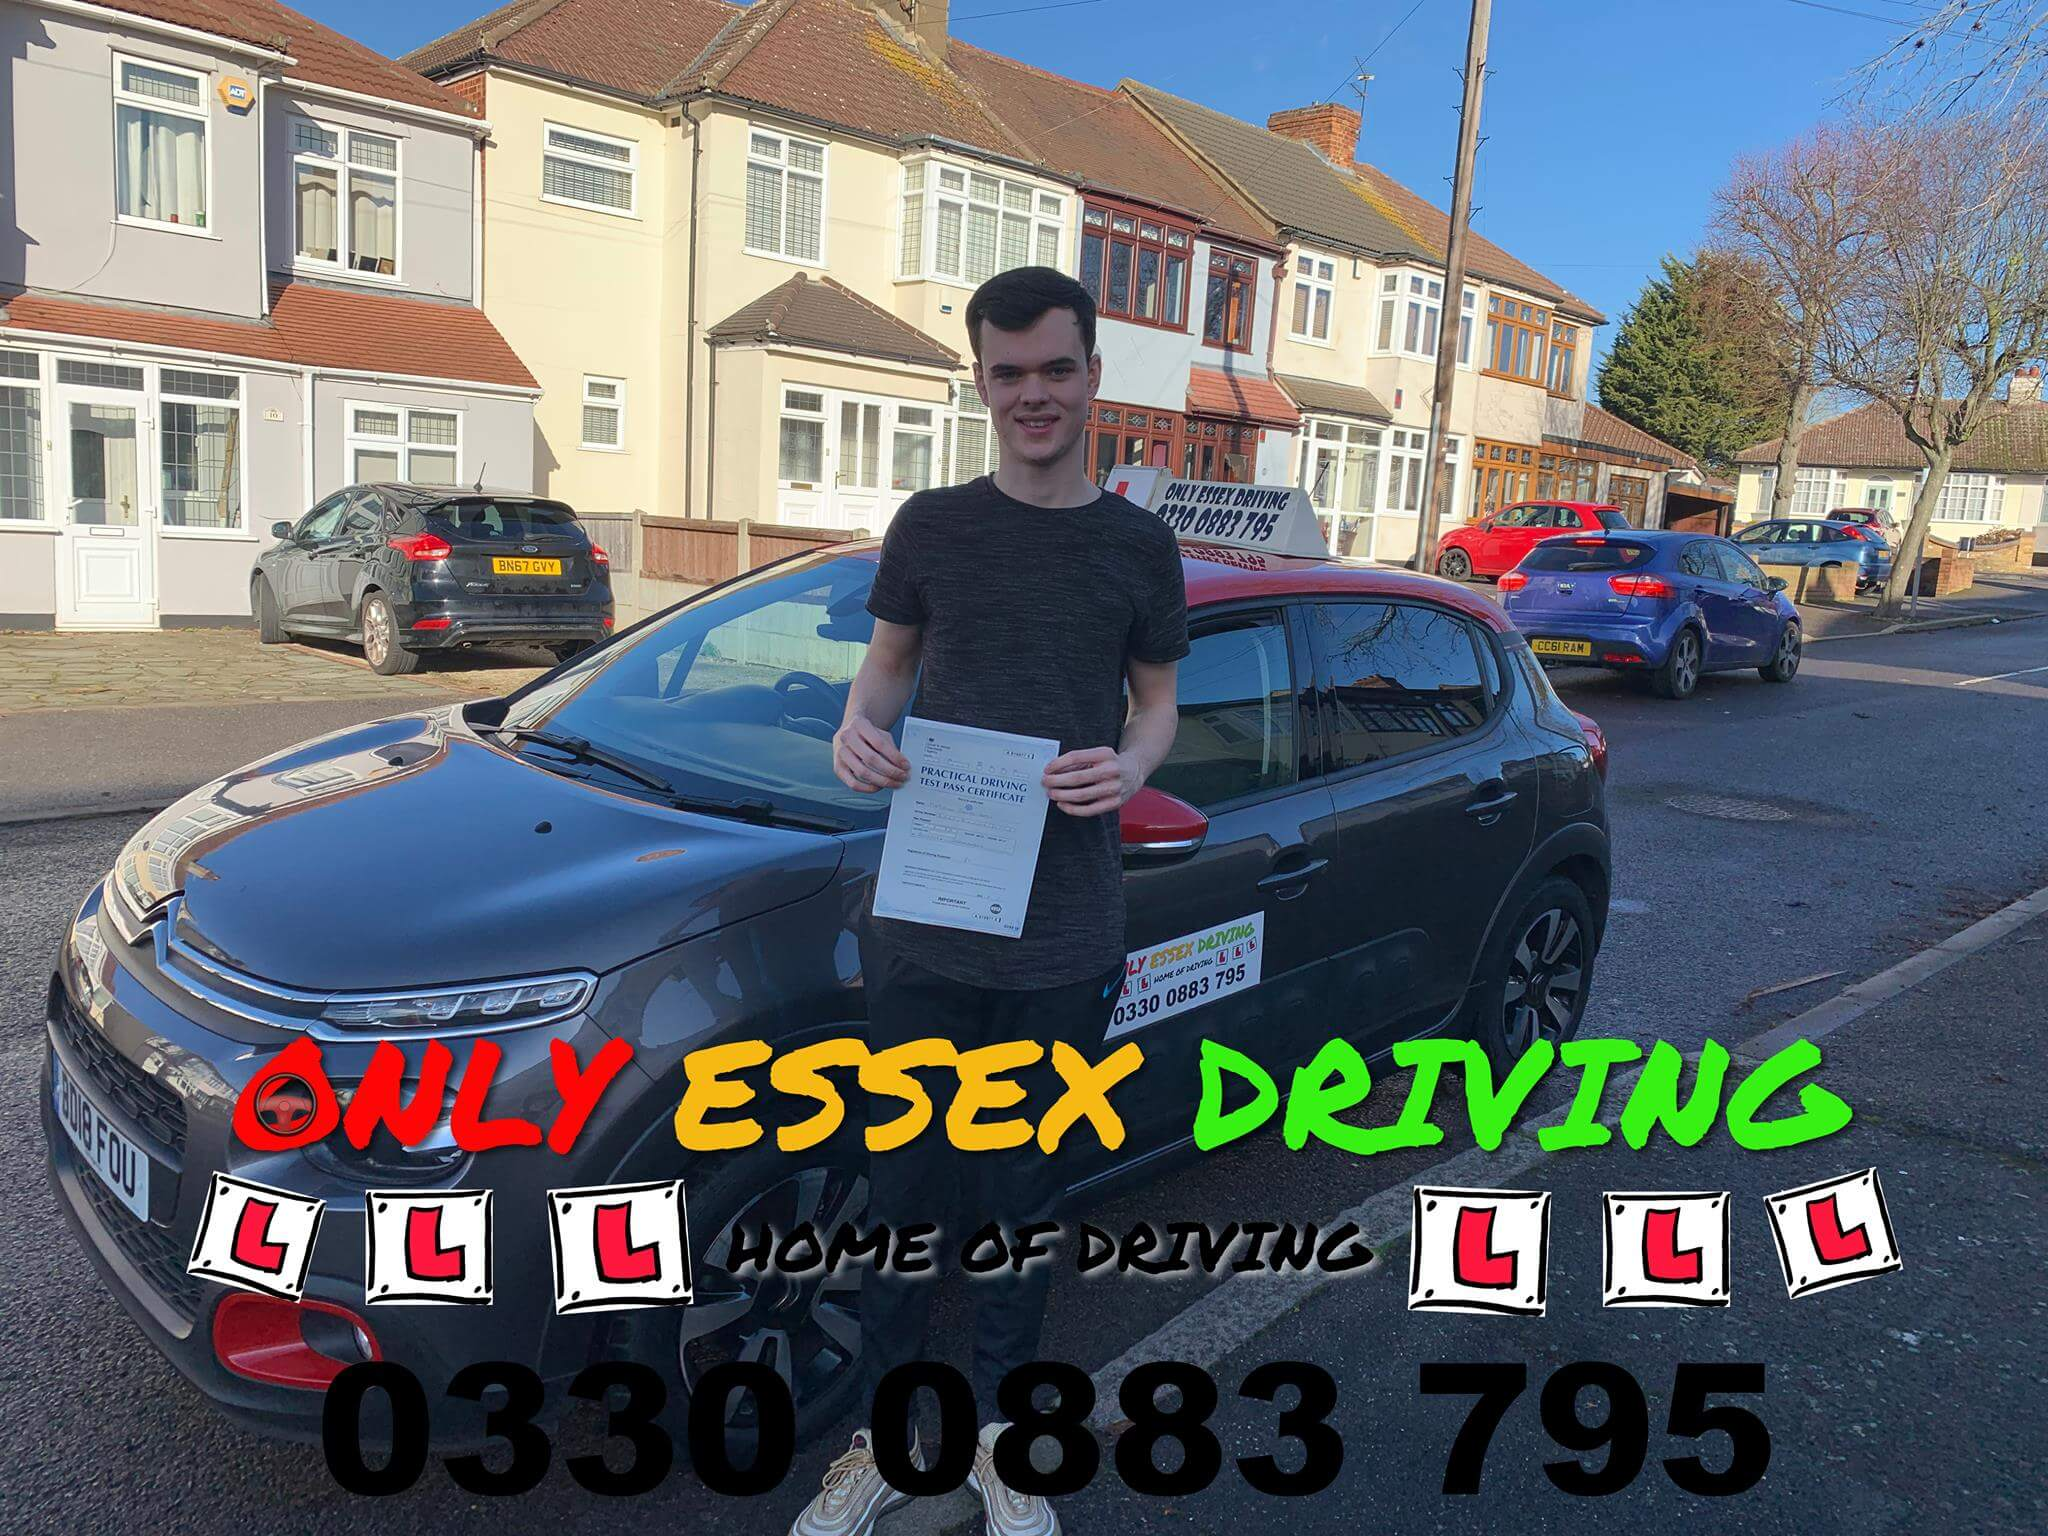 Well done to Matthew who passed his driving test first time with only 3 minors at Hornchurch test centre